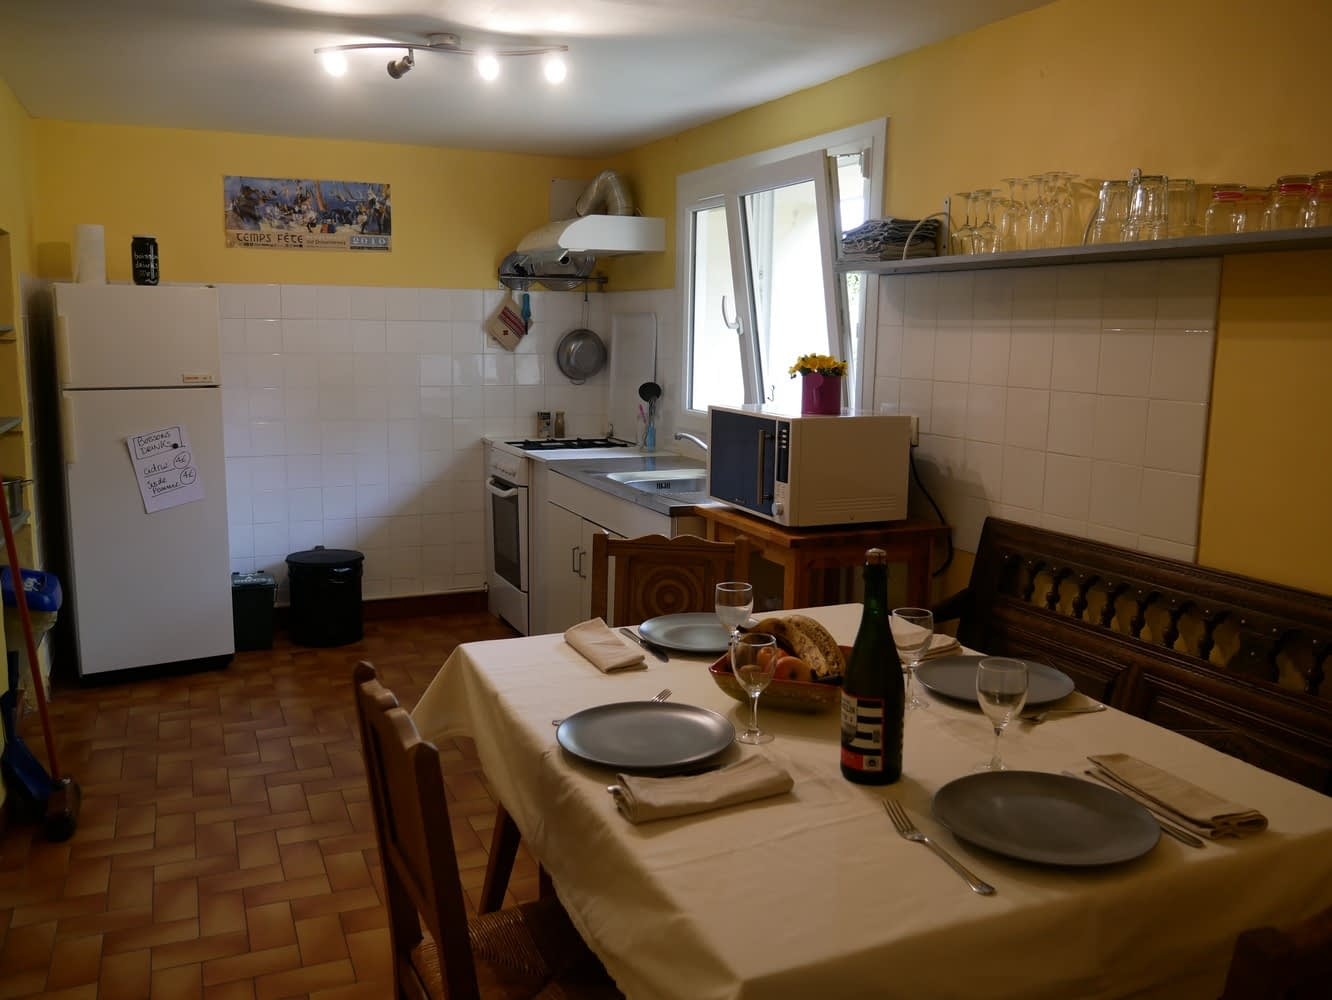 kitchen available for our b&b guests